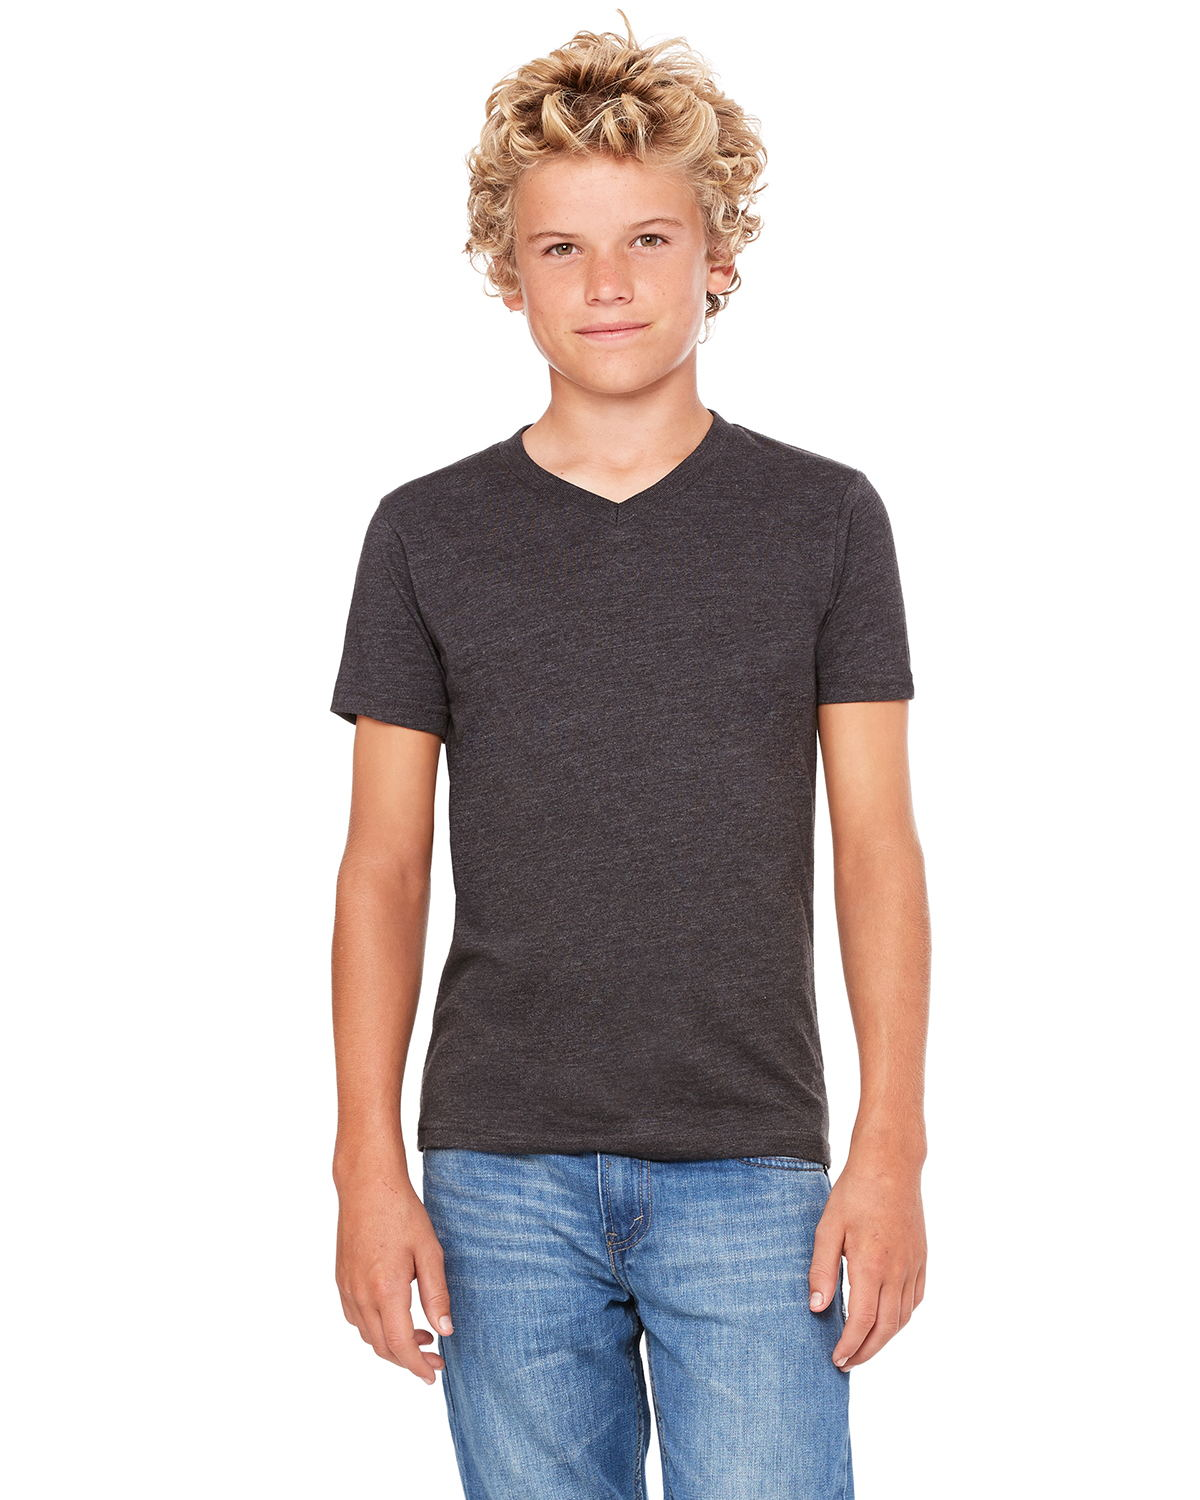 Canvas 3005Y - Youth Short Sleeve V-Neck T-Shirt